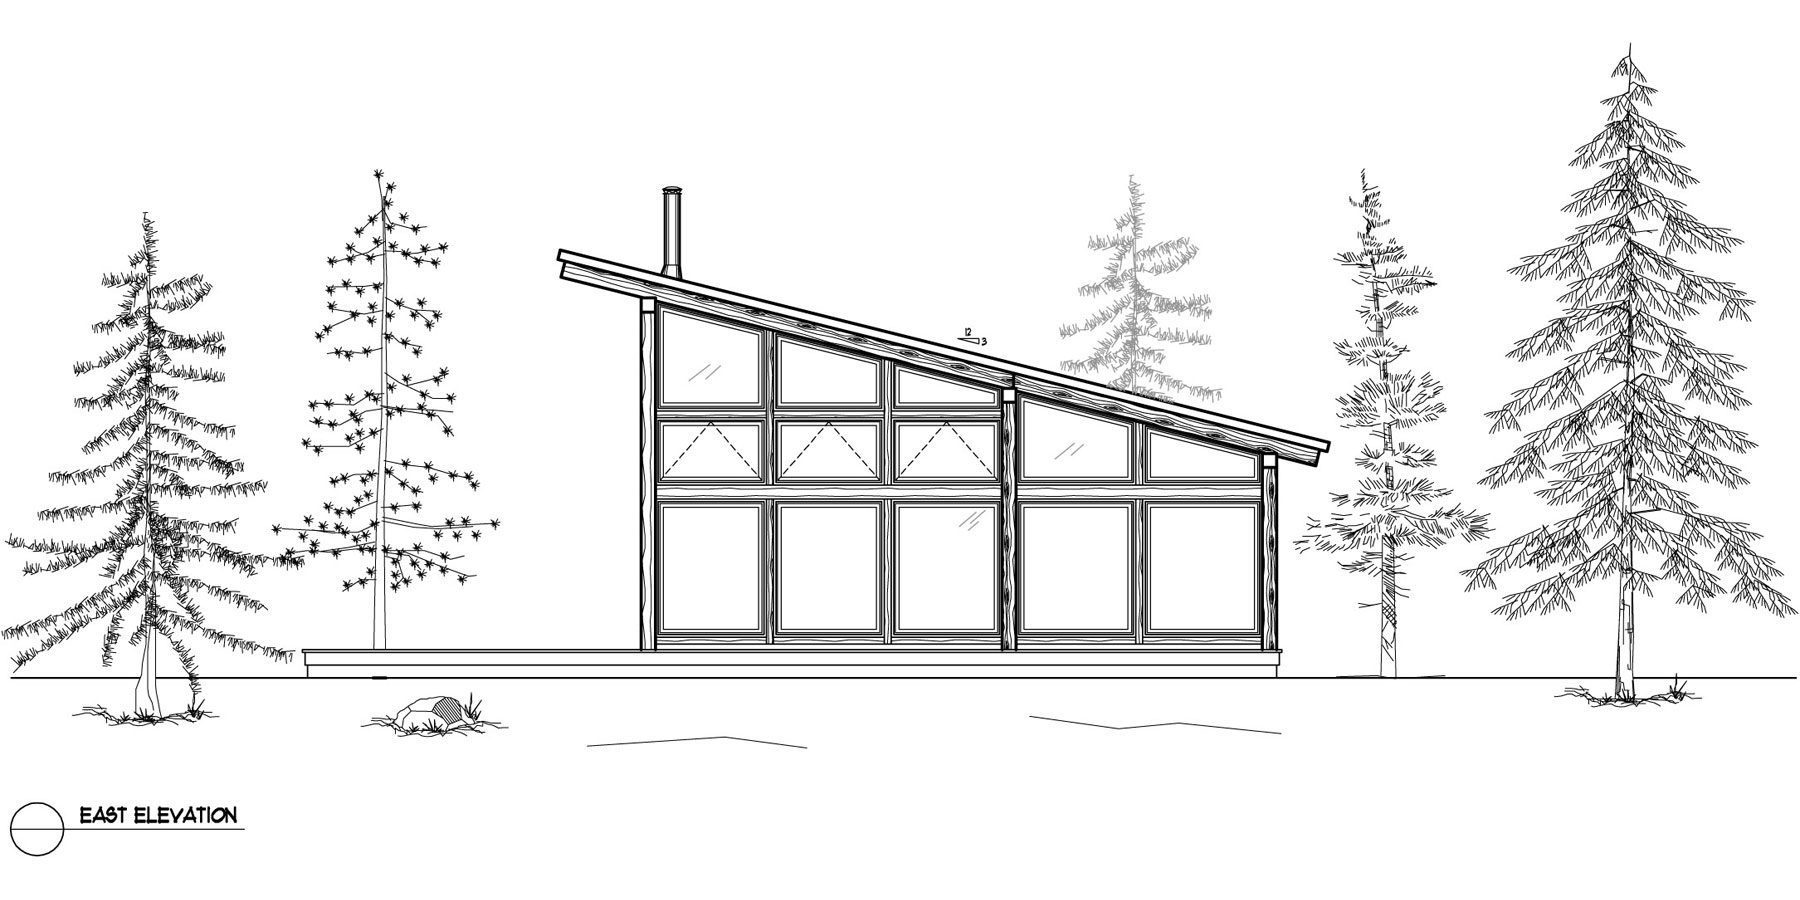 Normerica Timber Frames, House Plan, The Davidson 3872, Right Elevation